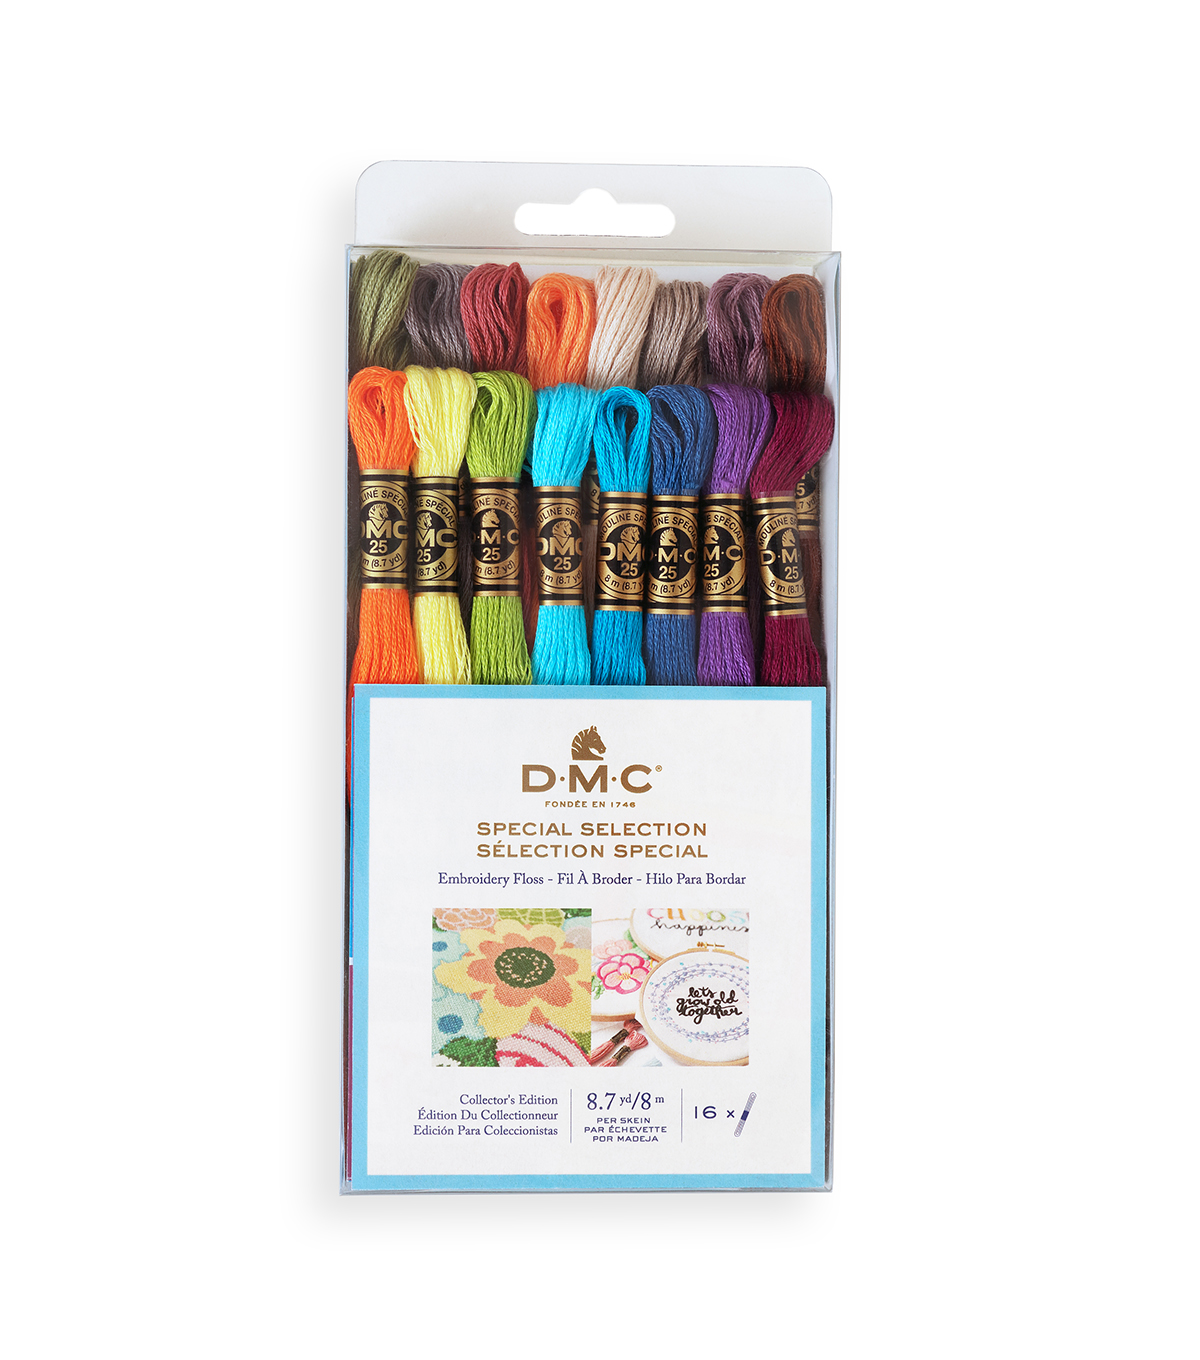 Dmc Embroidery Floss Pack 87 Yards 16pkg New Floss Colors Joann